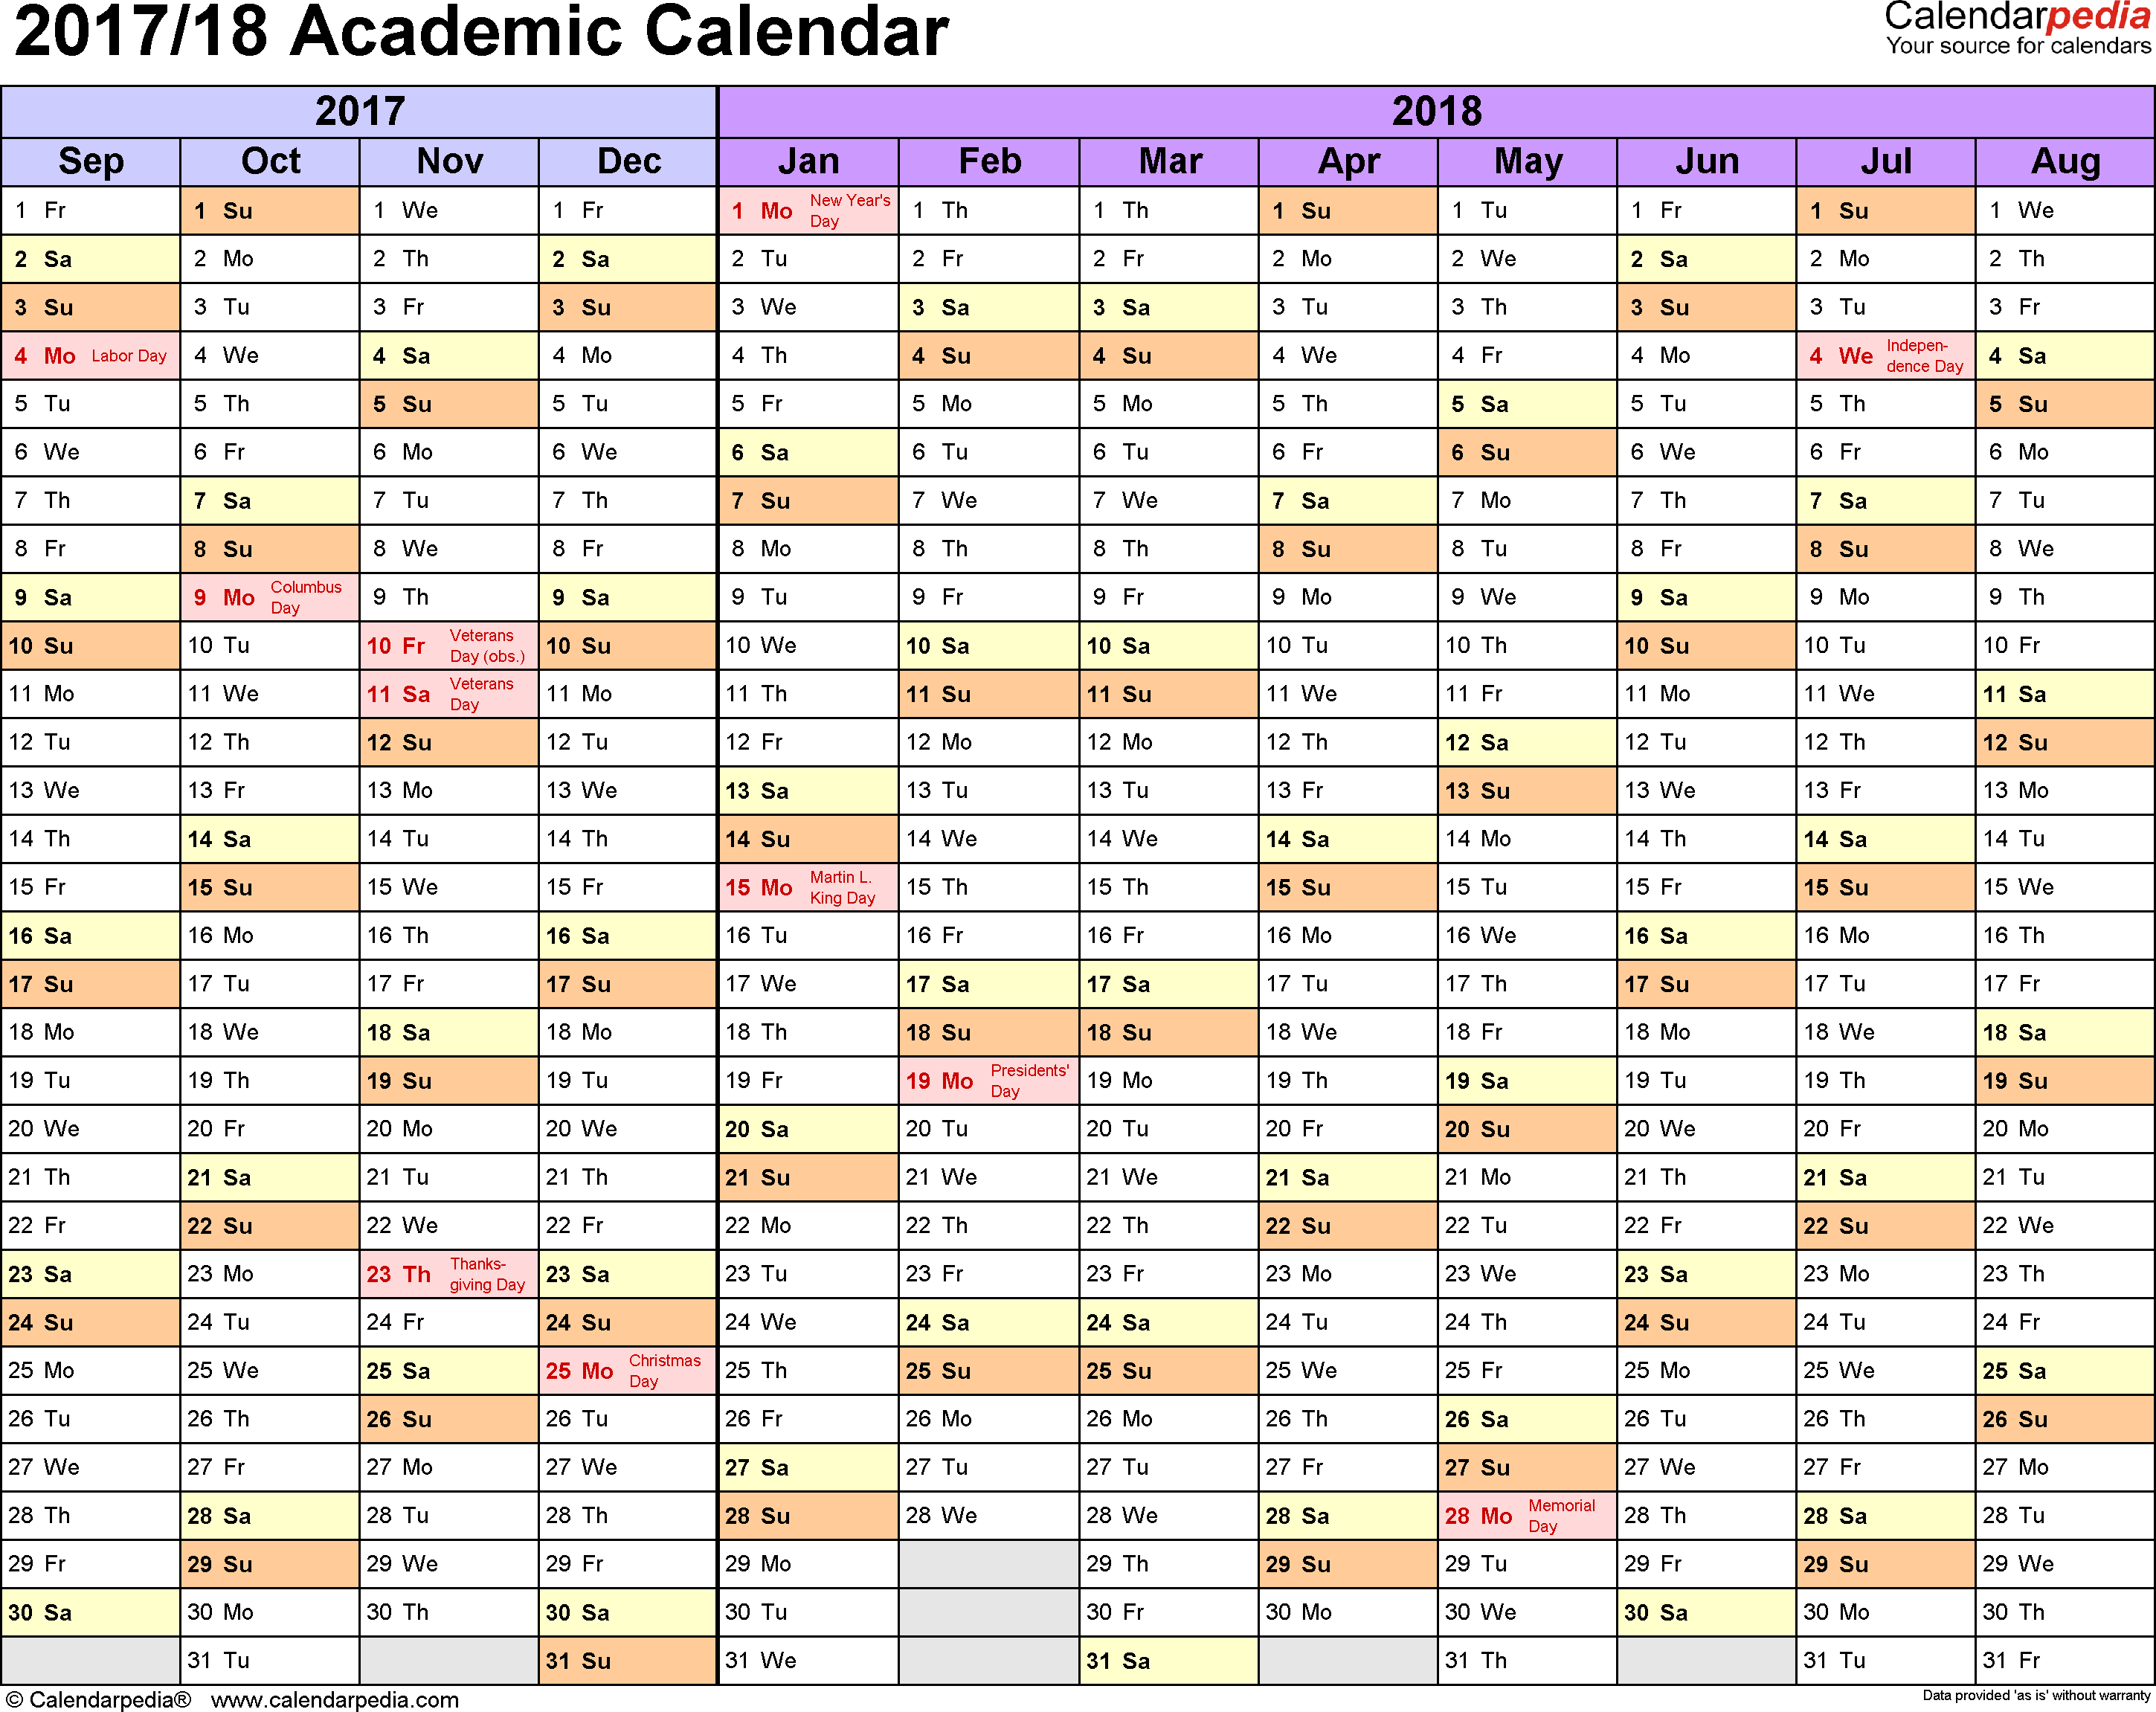 Template 1: Academic calendar 2017/18 for Excel, landscape orientation, months horizontally, 1 page